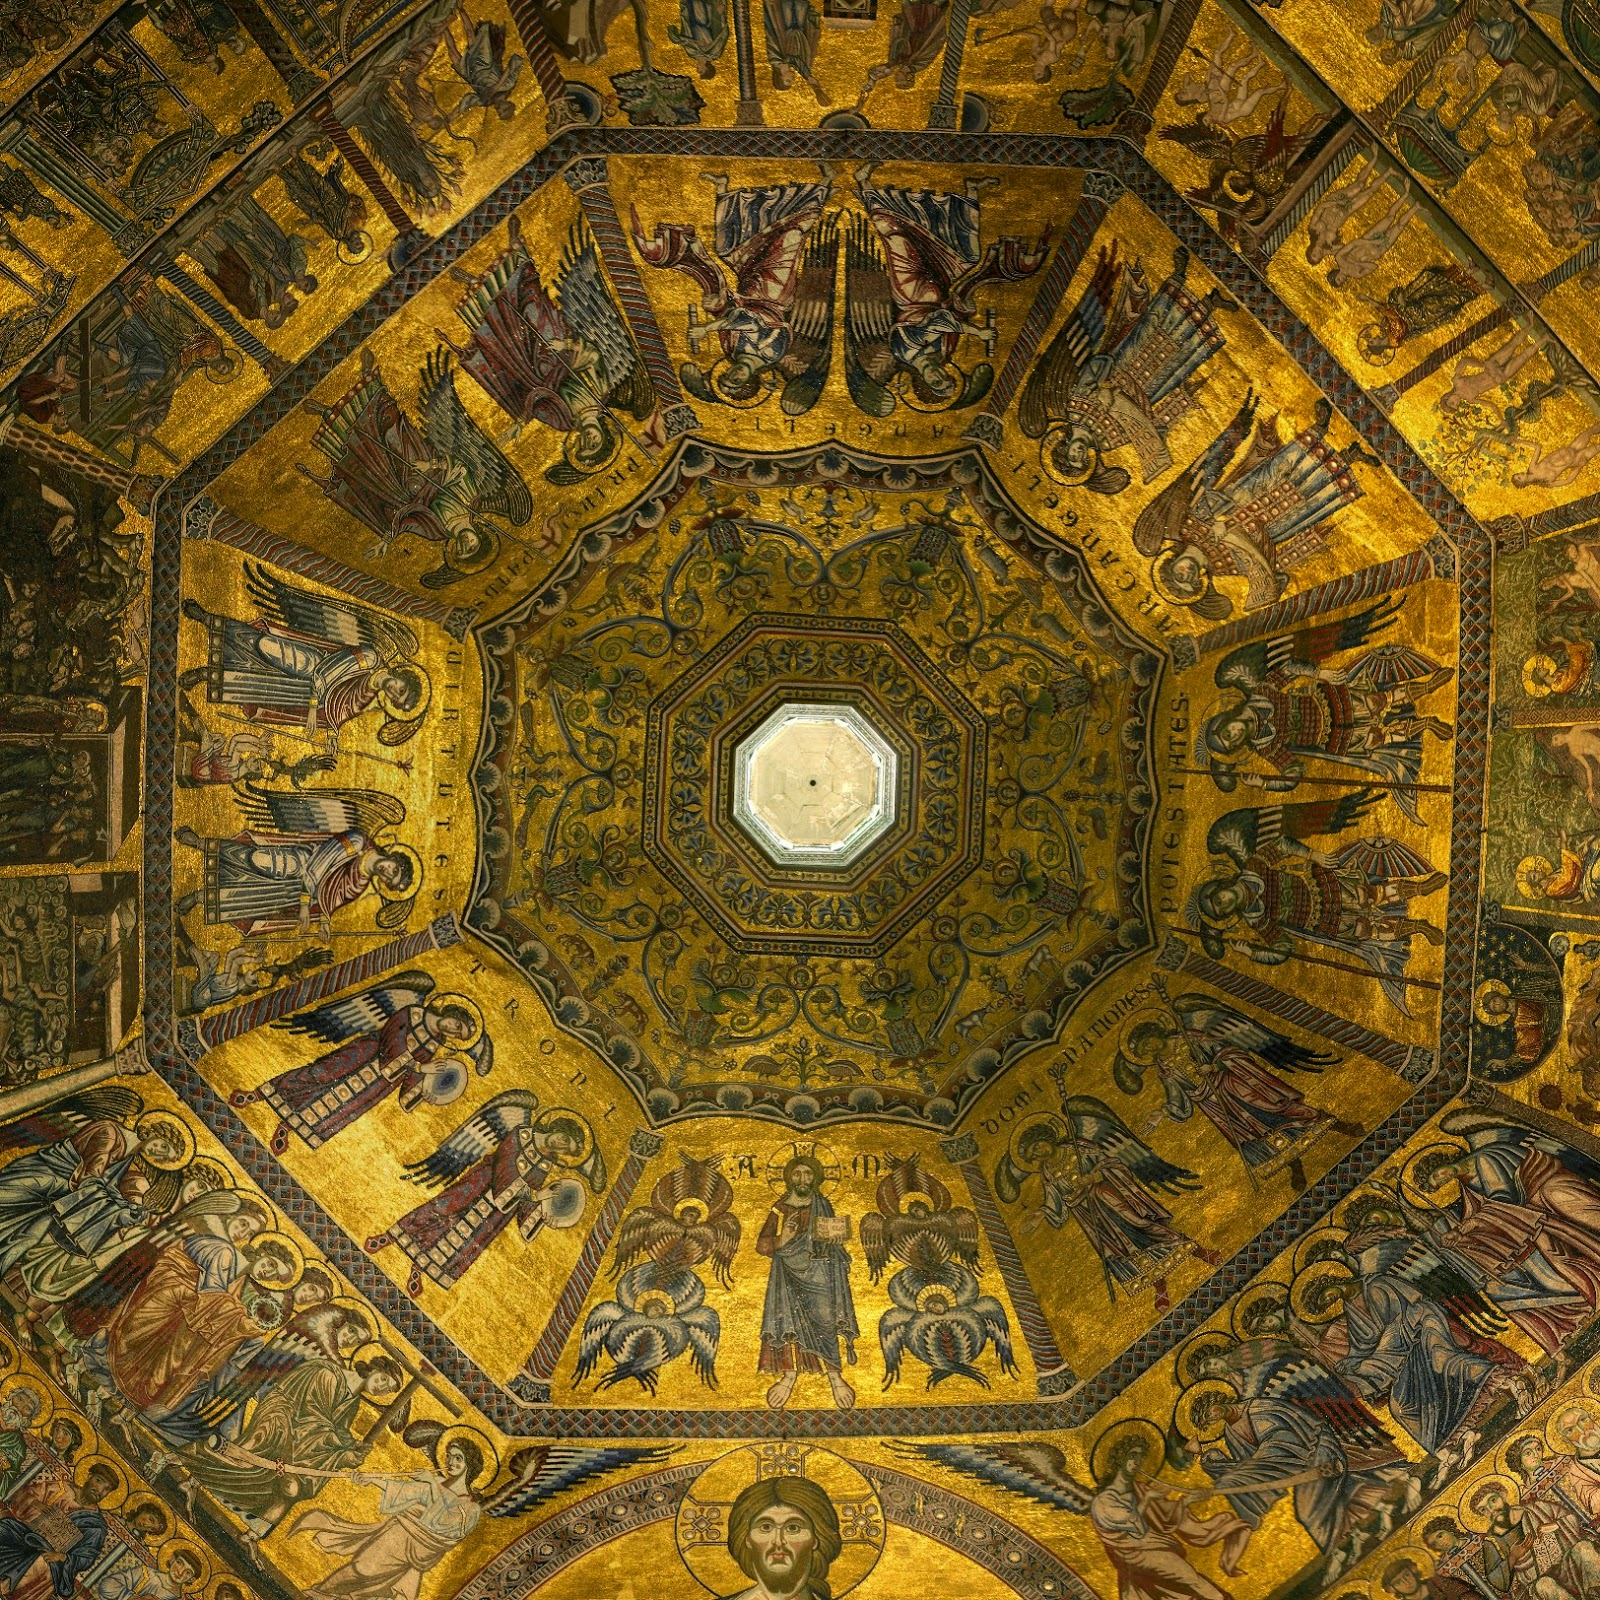 Mosaic ceiling of St. John's Basilica, Florence, Italy